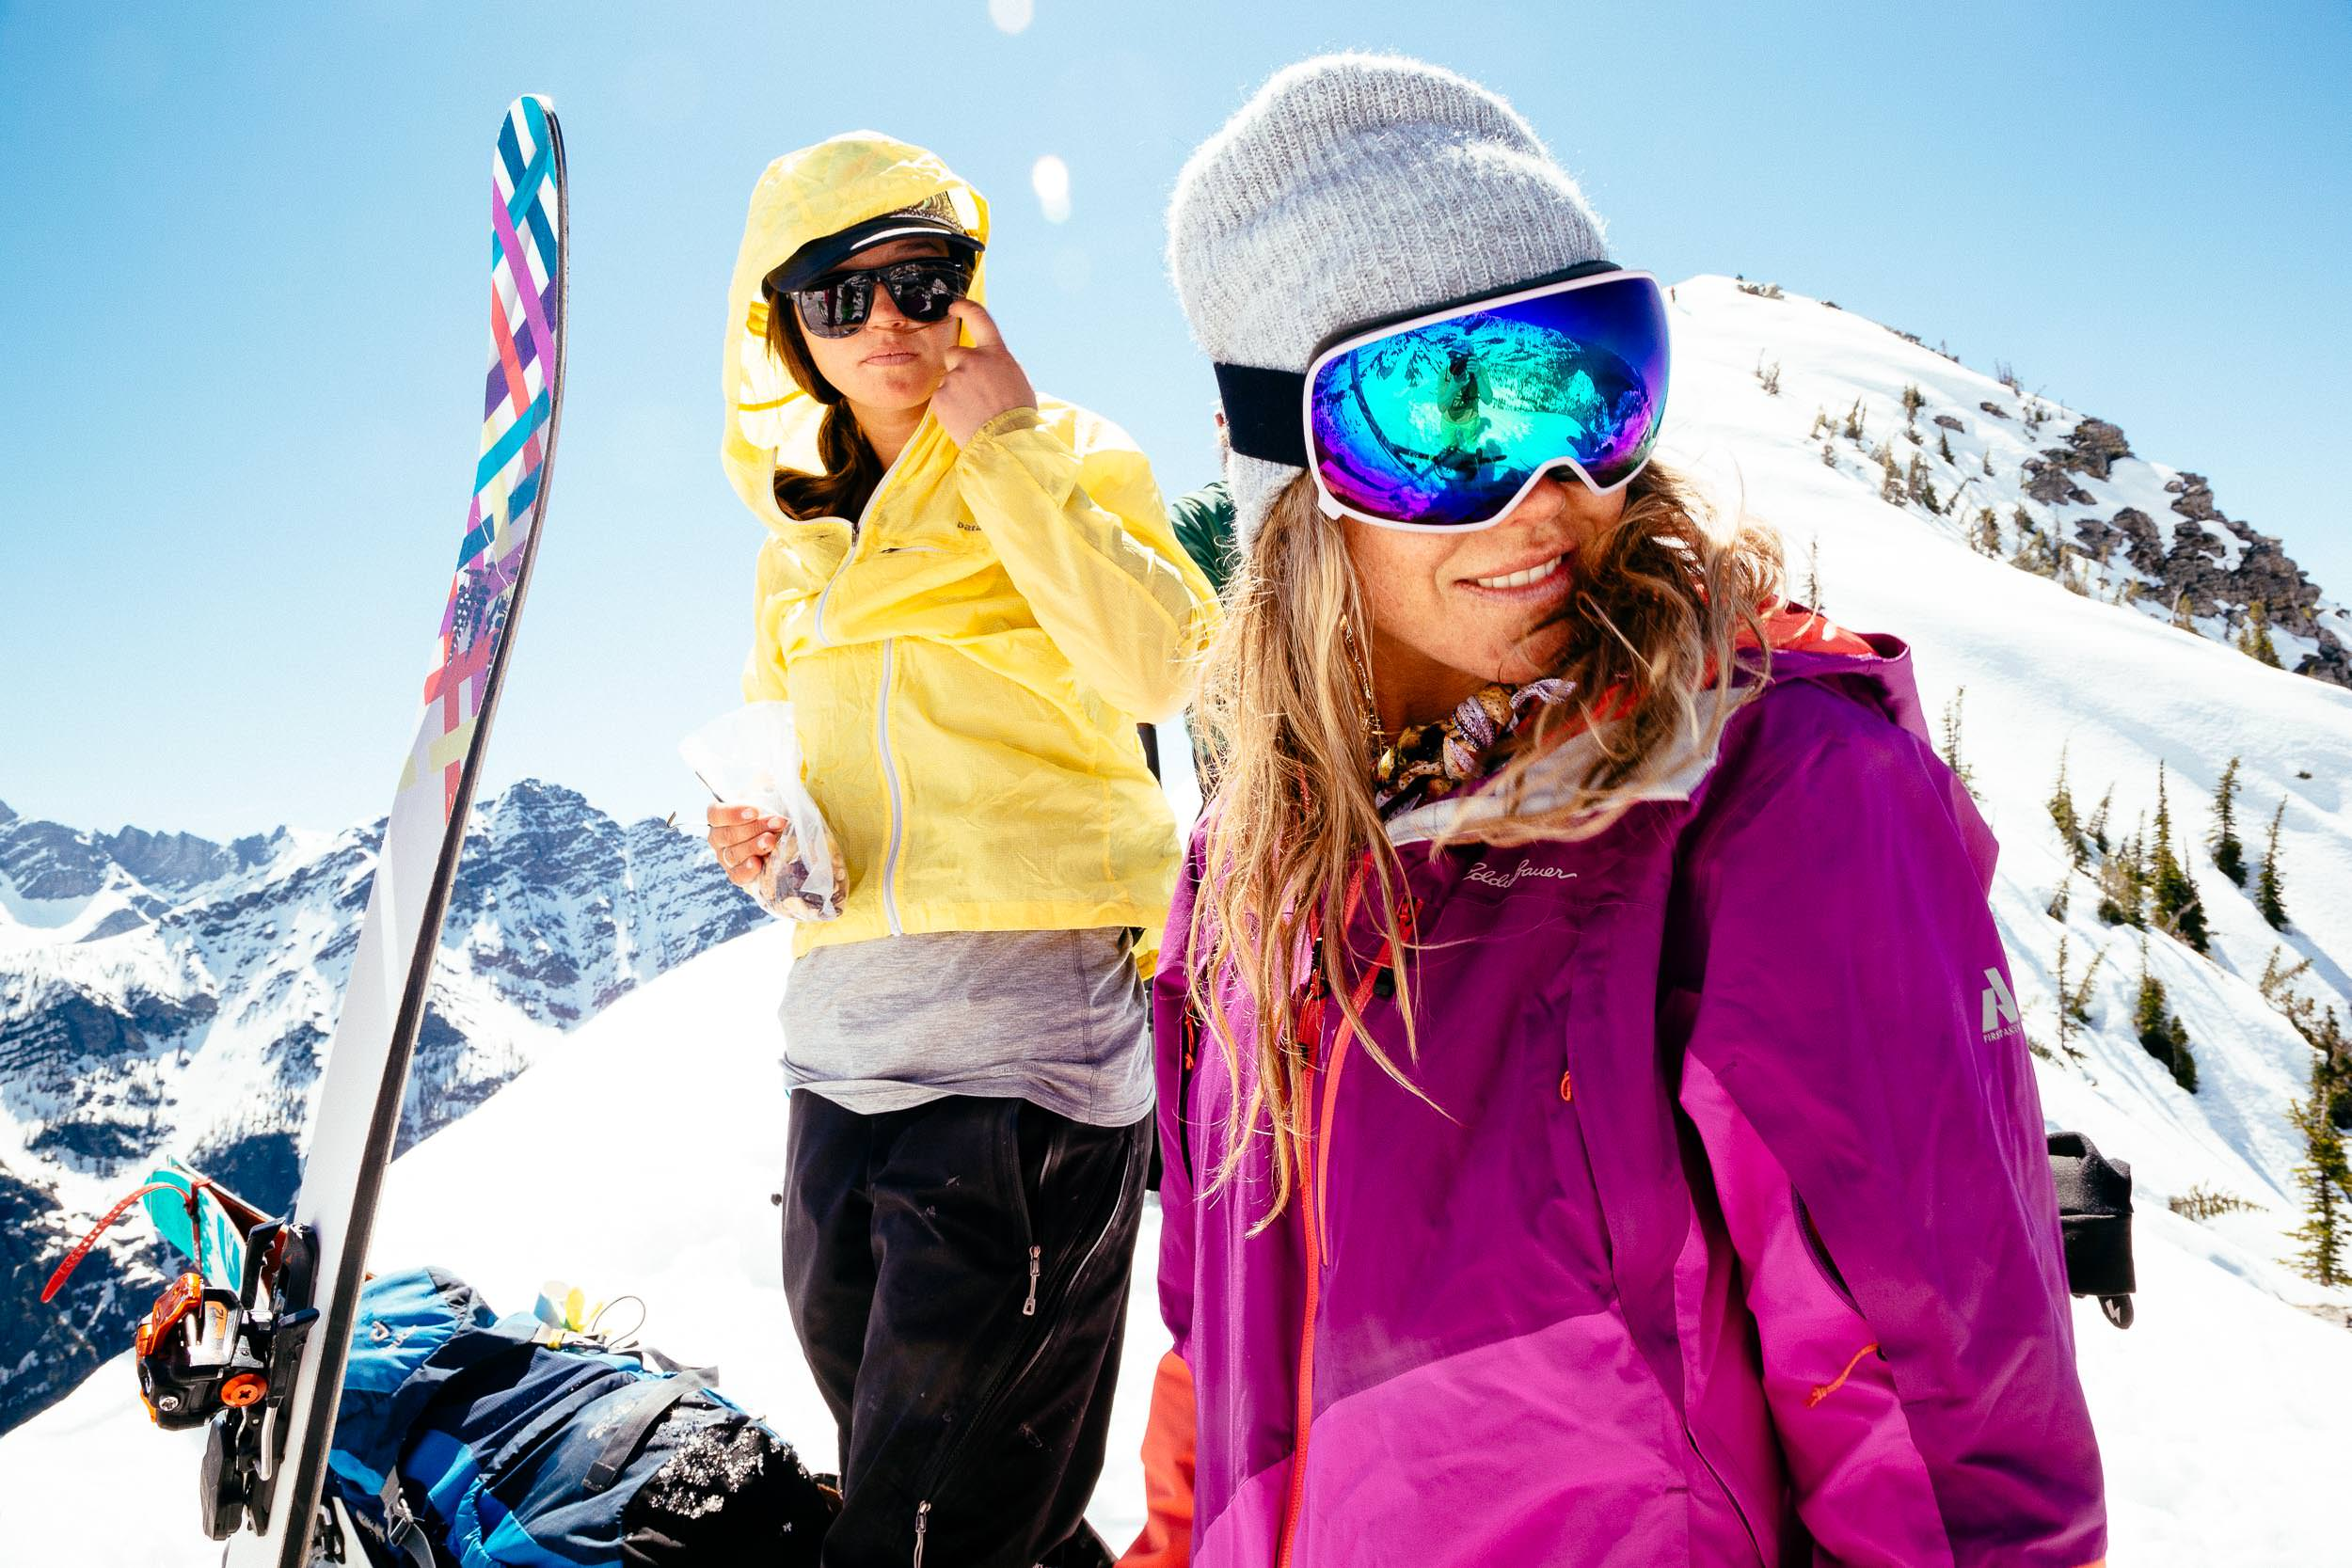 Skiing Lifestyle by Photographer Jay Goodrich